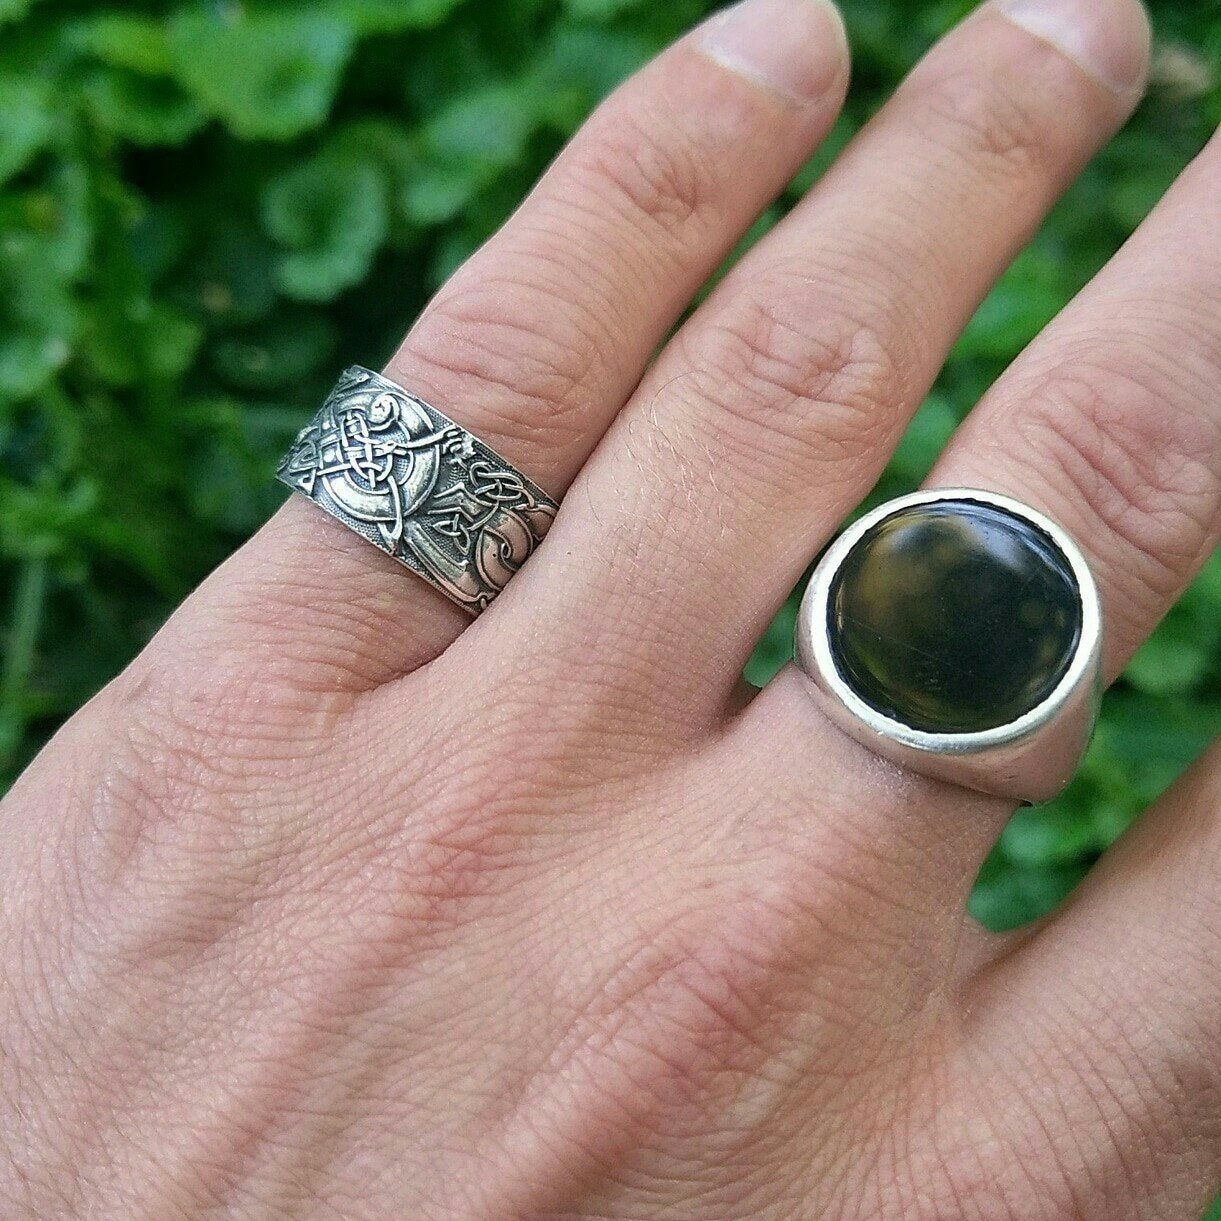 RuyaN shared a new photo on | Viking jewelry in our time | Pinterest ...